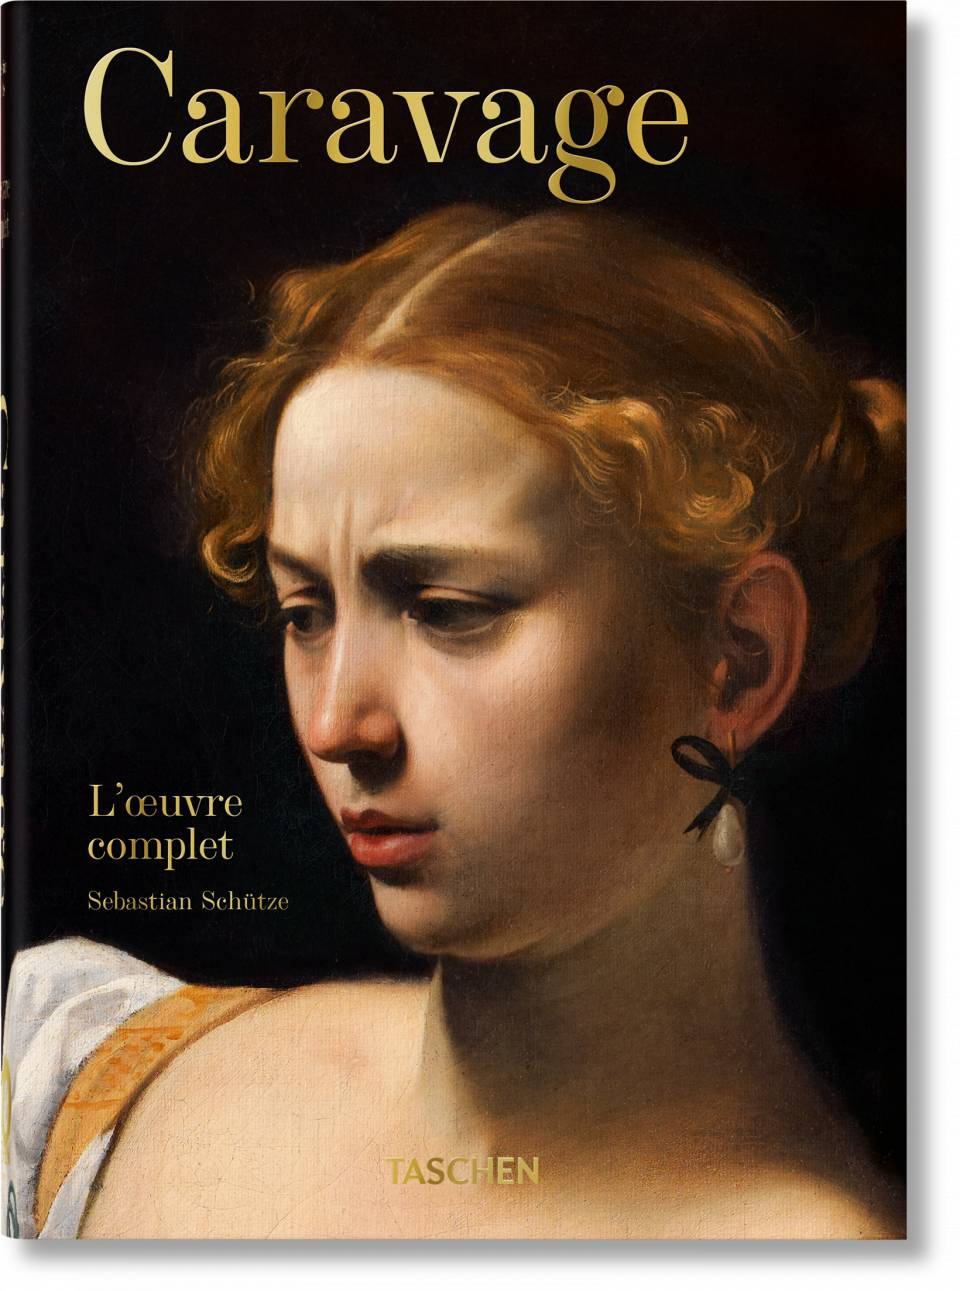 Caravage. L'œuvre complet. 40th Ed. - image 1